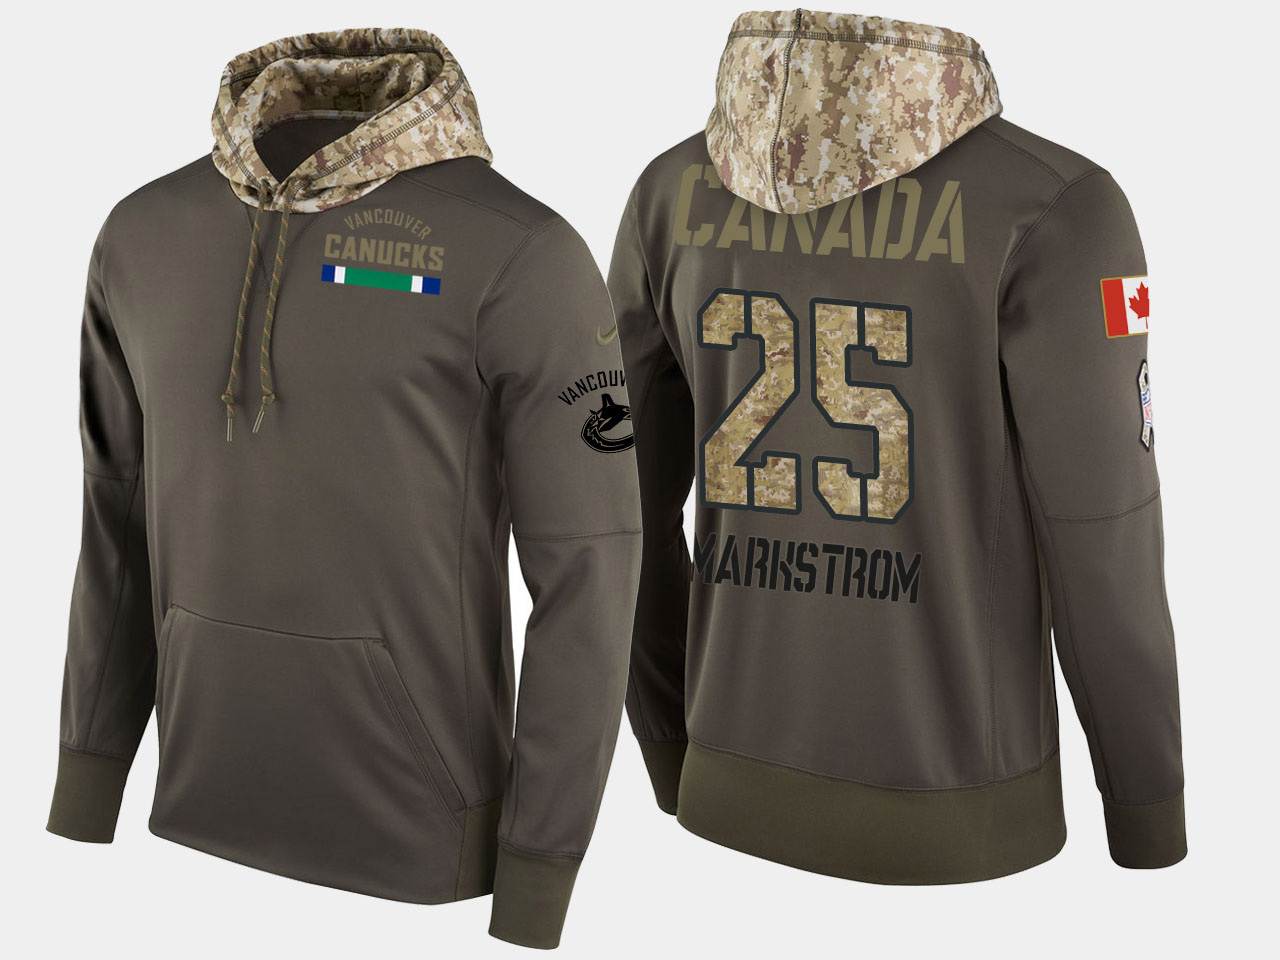 Nike Canucks 25 Gacob Markstrom Olive Salute To Service Pullover Hoodie